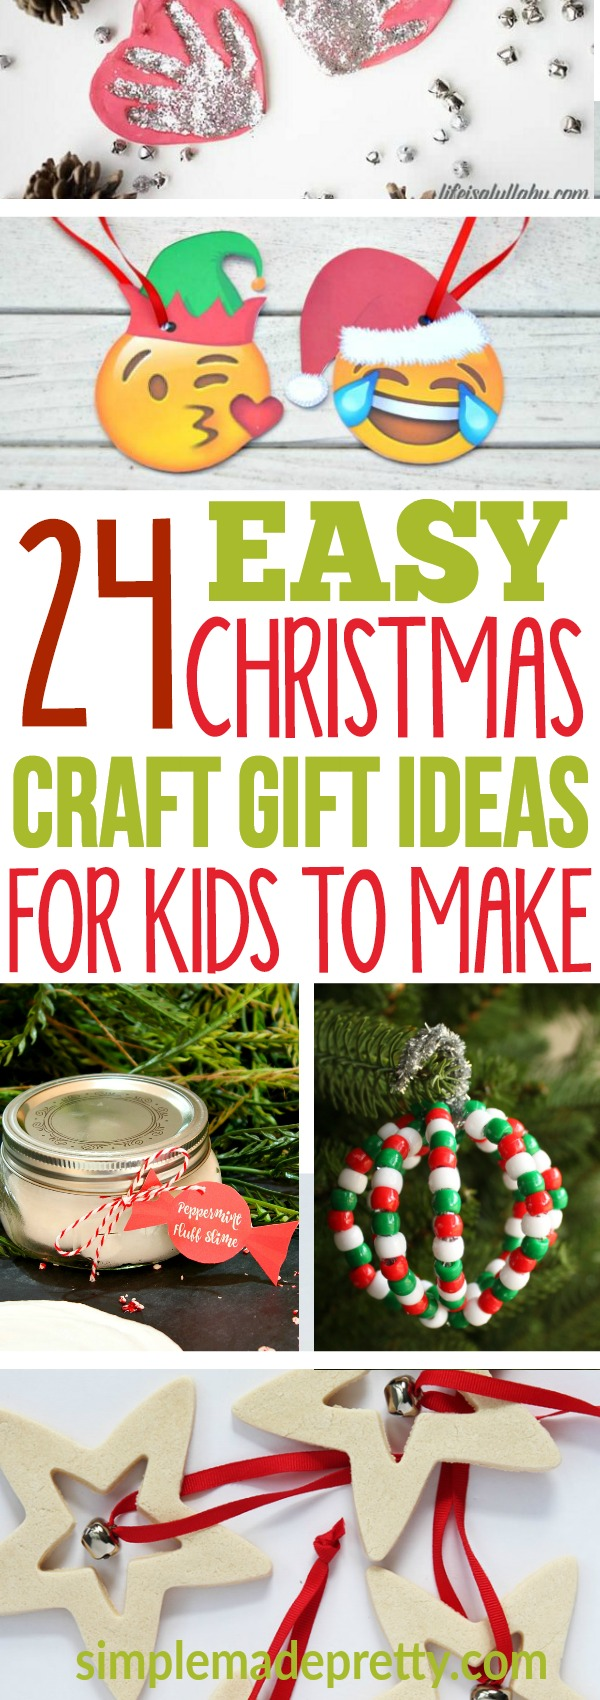 24 Easy Christmas Craft Gift Ideas For Kids To Make Simple Made Pretty